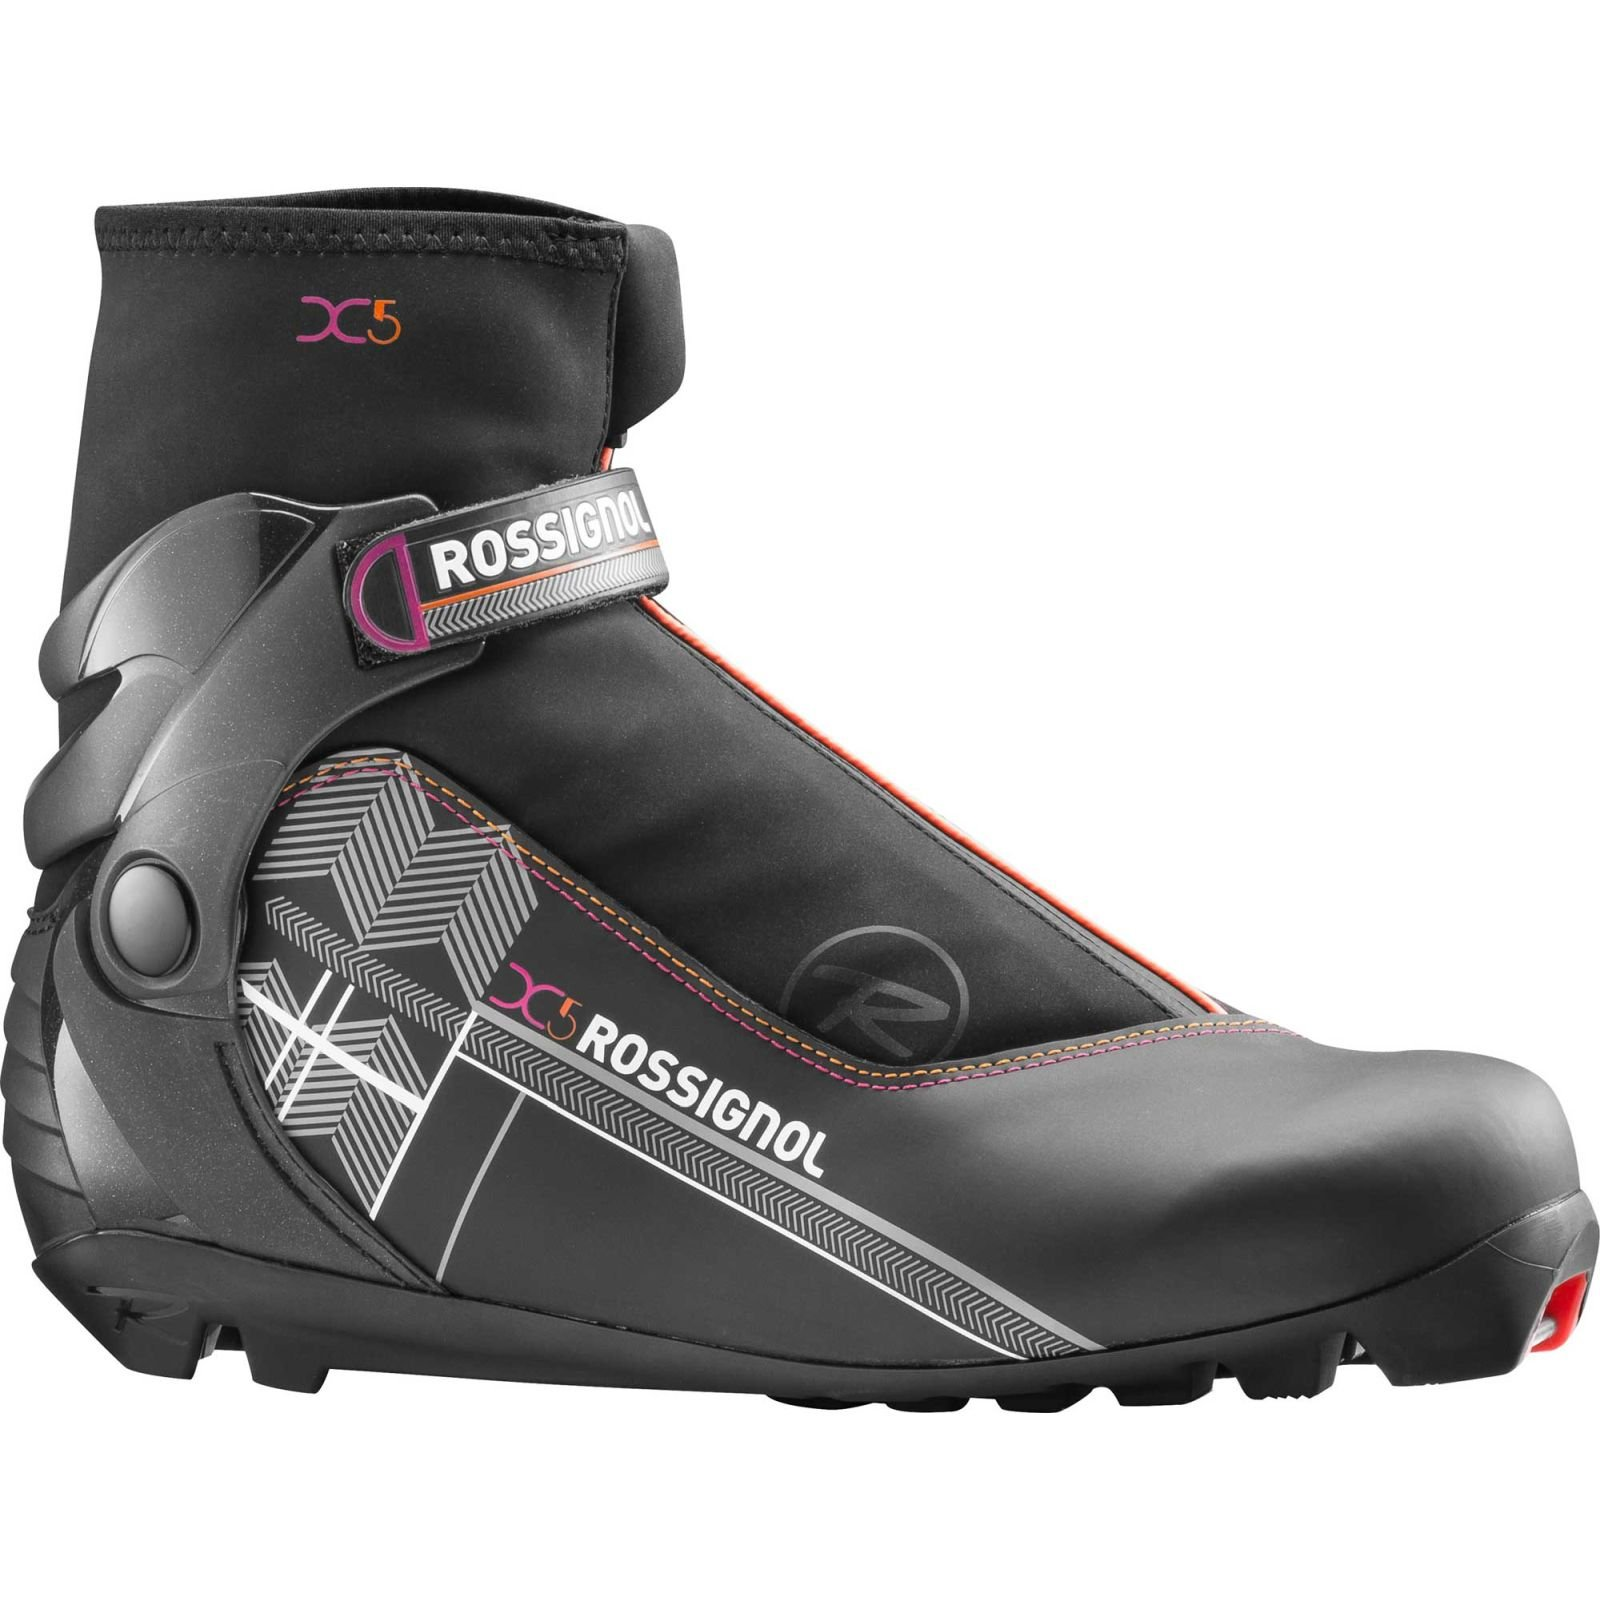 Rossignol Women's X5 FW Touring Boots One Color - 41 by Rossignol